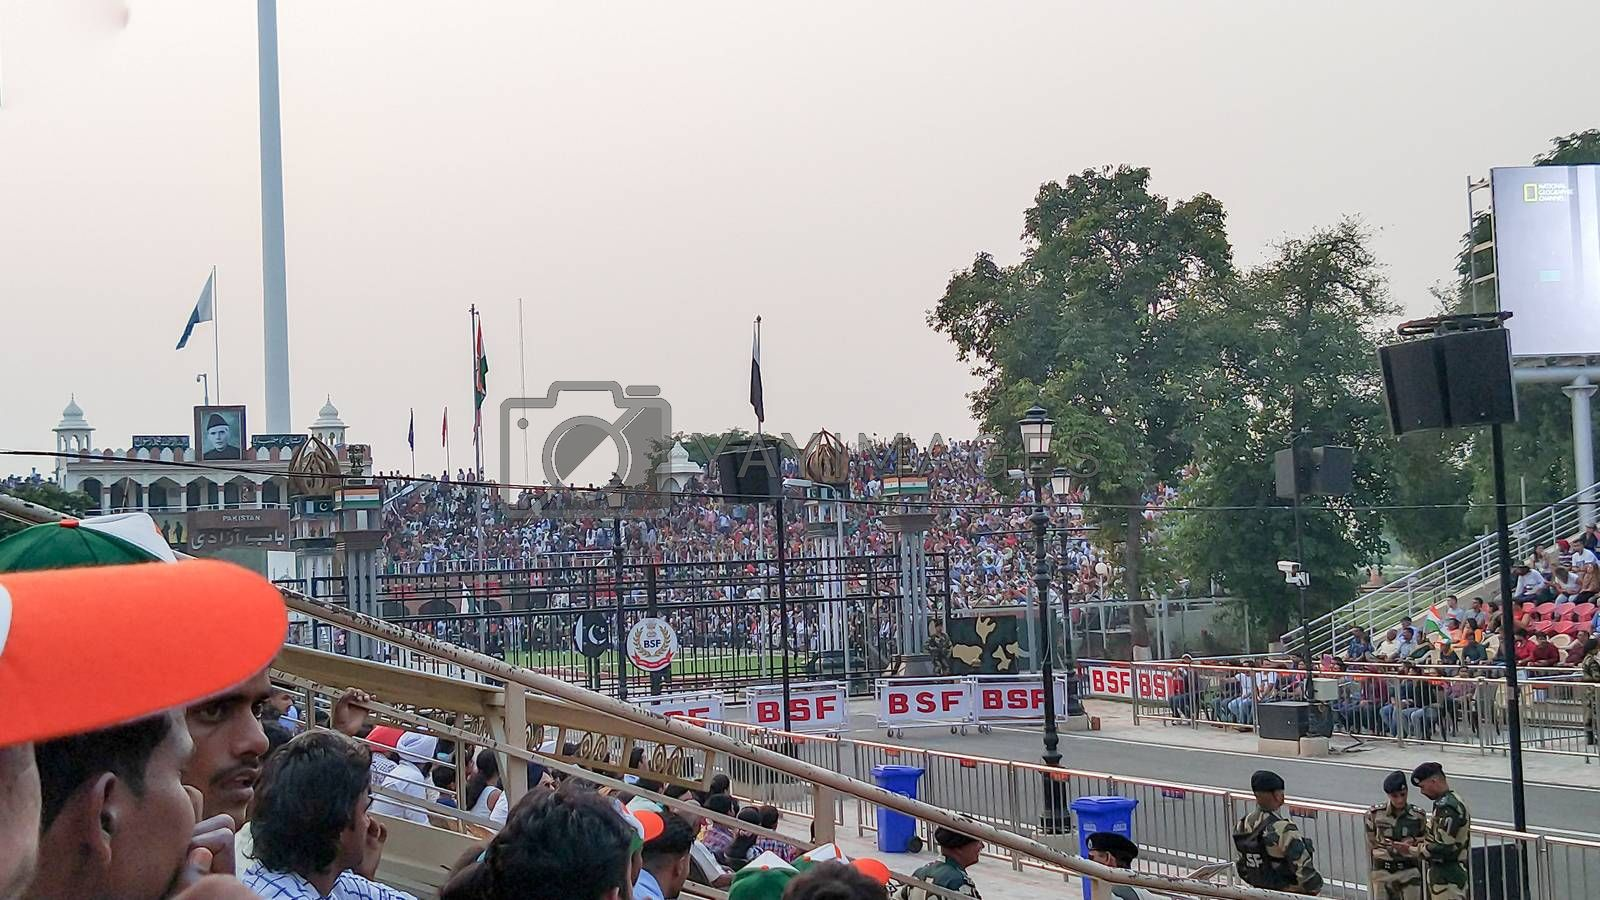 Wagah border ceremony between Pakistan and India in Wahga or Wagha Border in famous India Pakistan border. Amritsar Punjab, India 15 August 2019